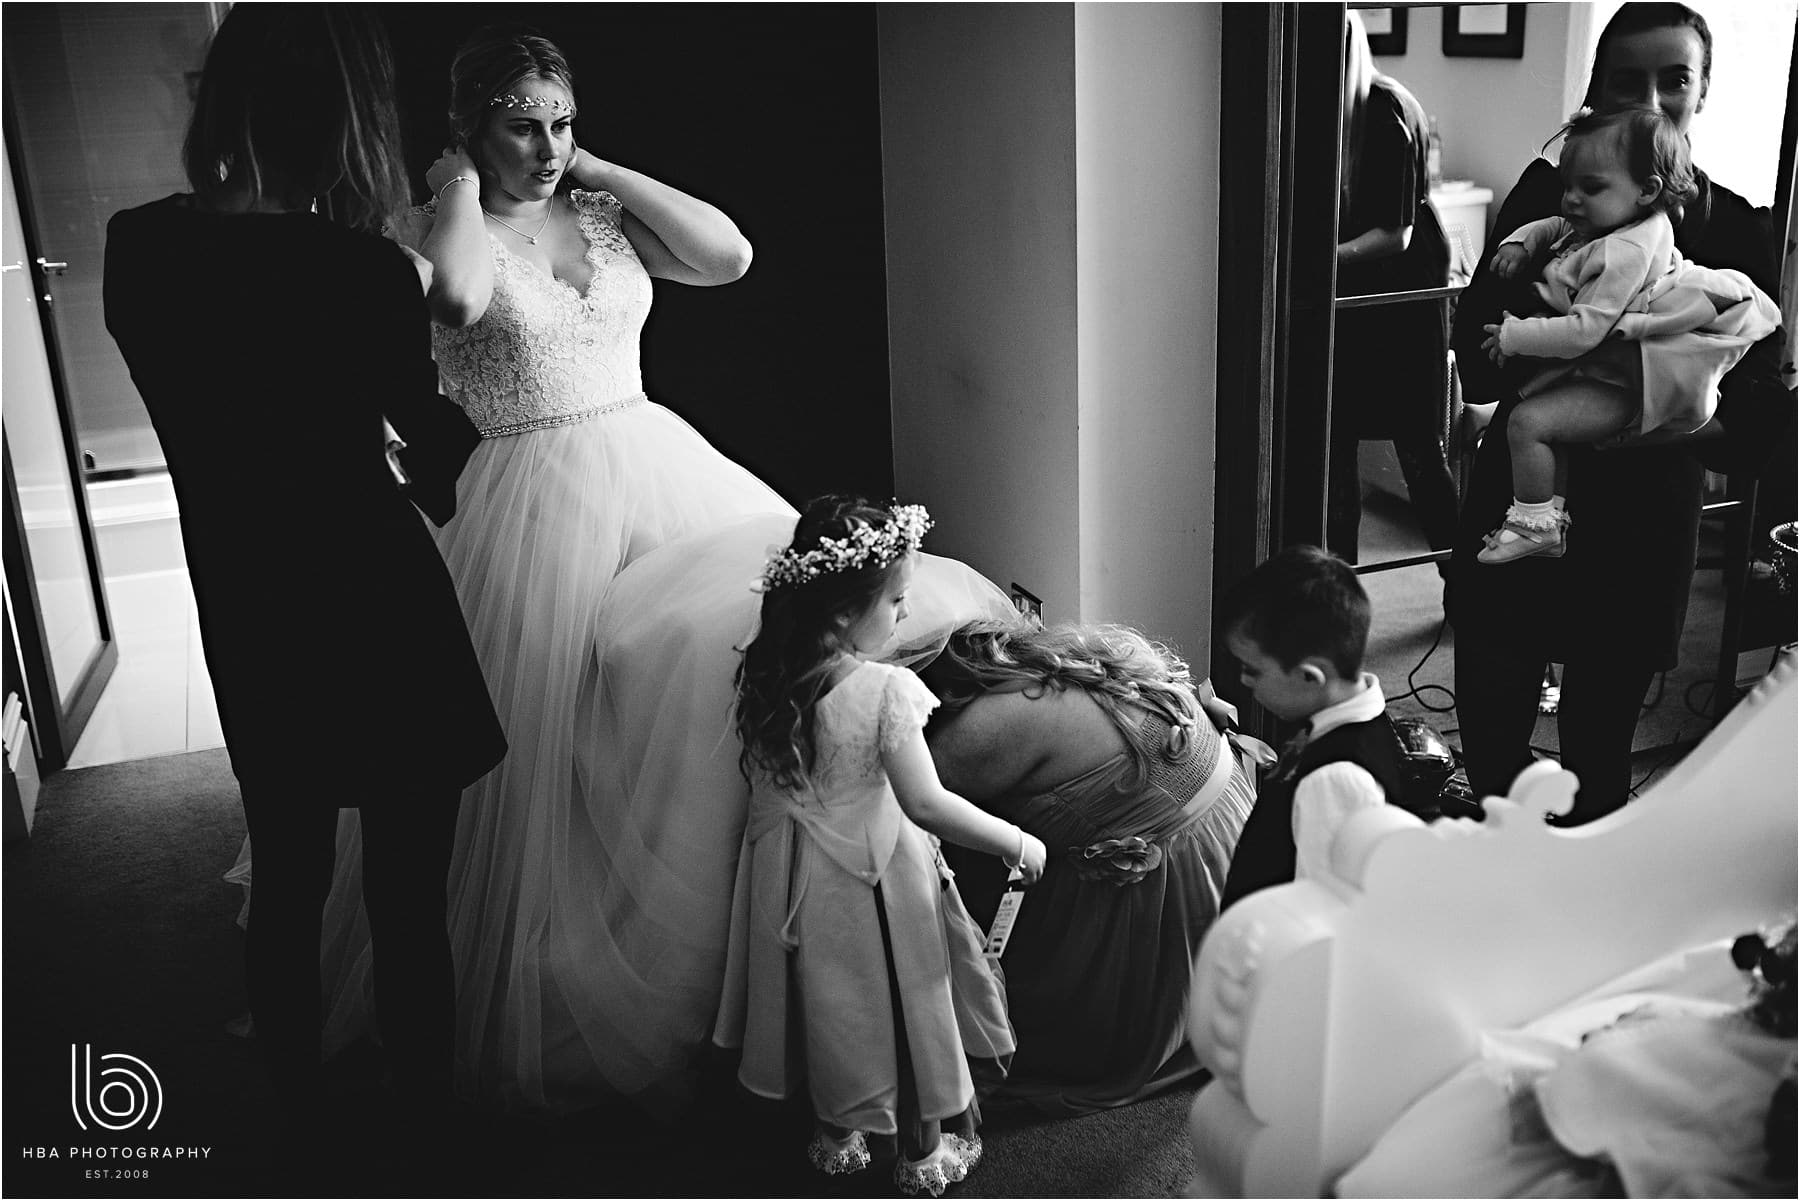 the bride putting her dress on